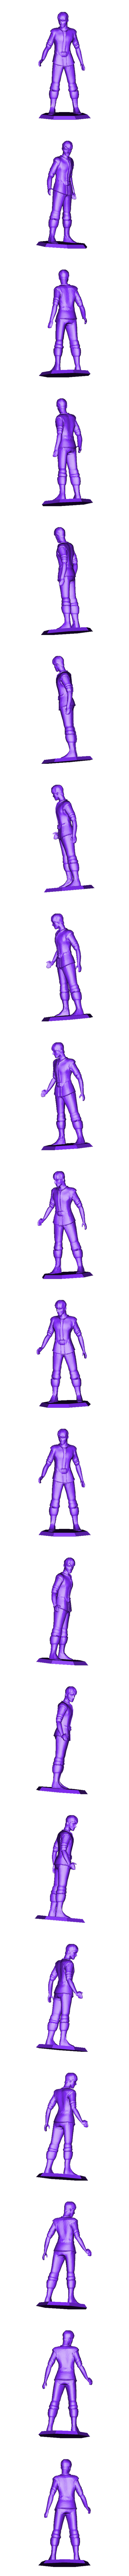 YoungLord_StandingReady.stl Download free STL file Young Hero (multiple poses) • 3D print object, stockto